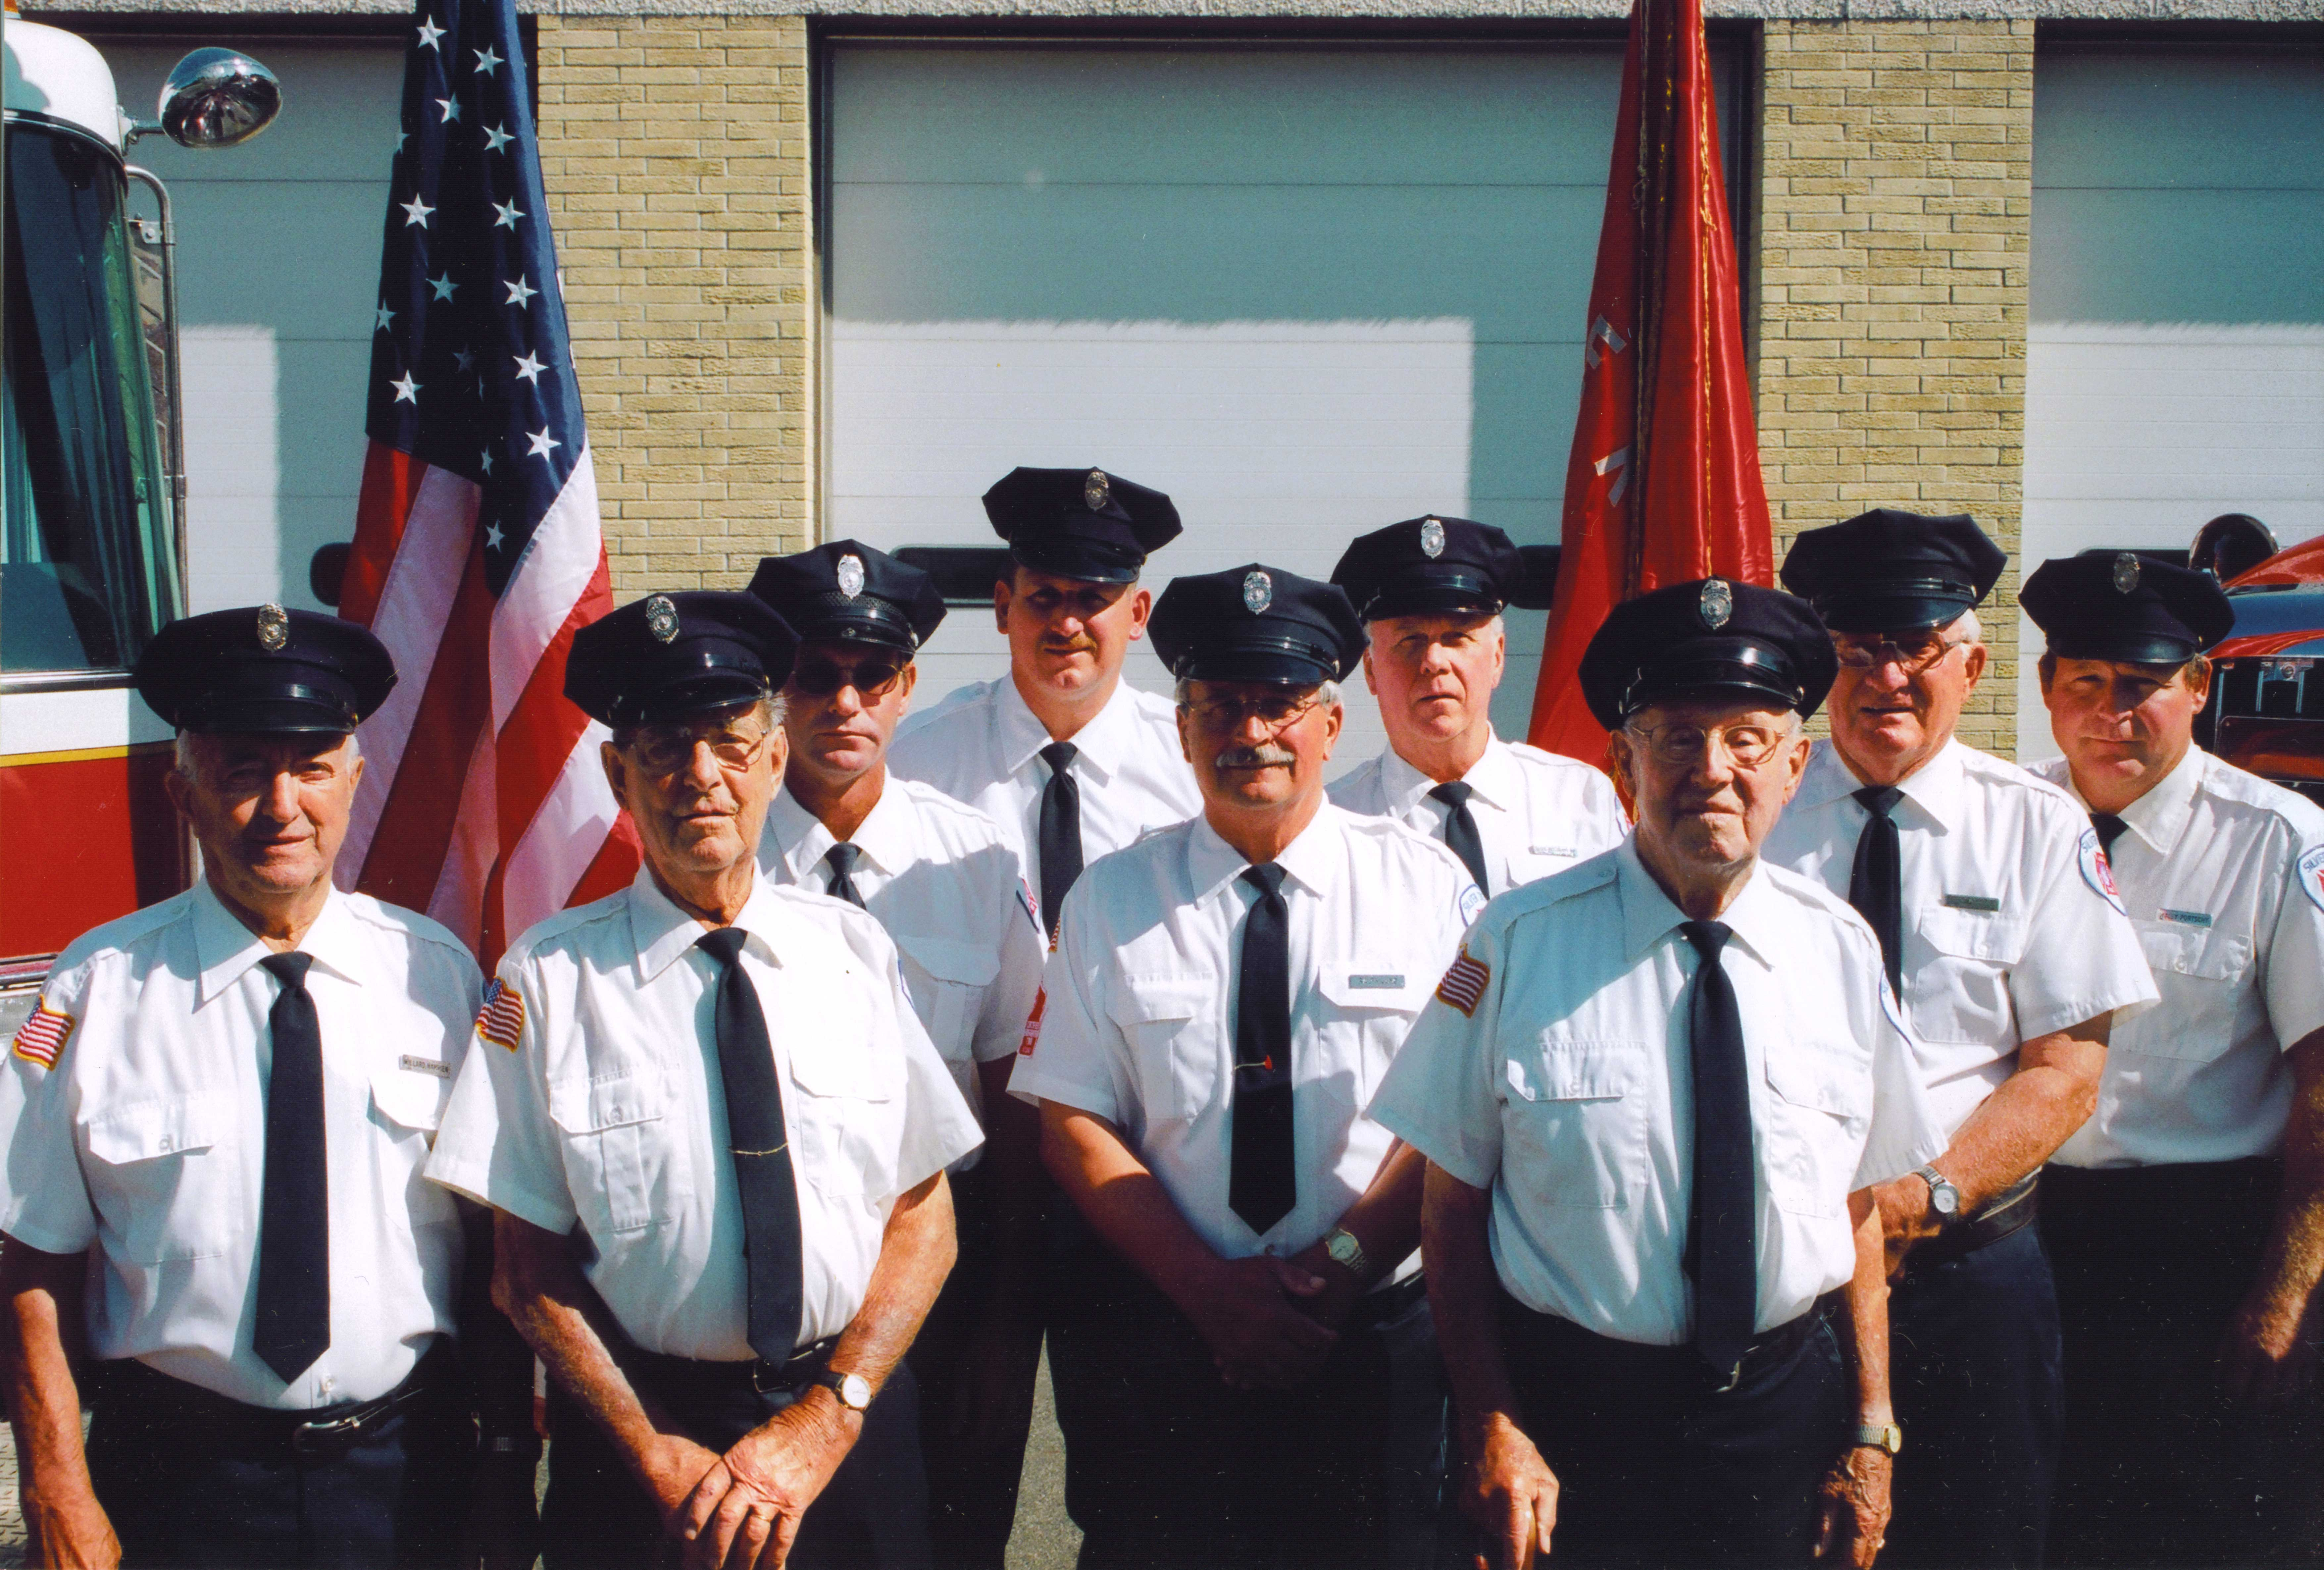 Chief Officers 1957-2005